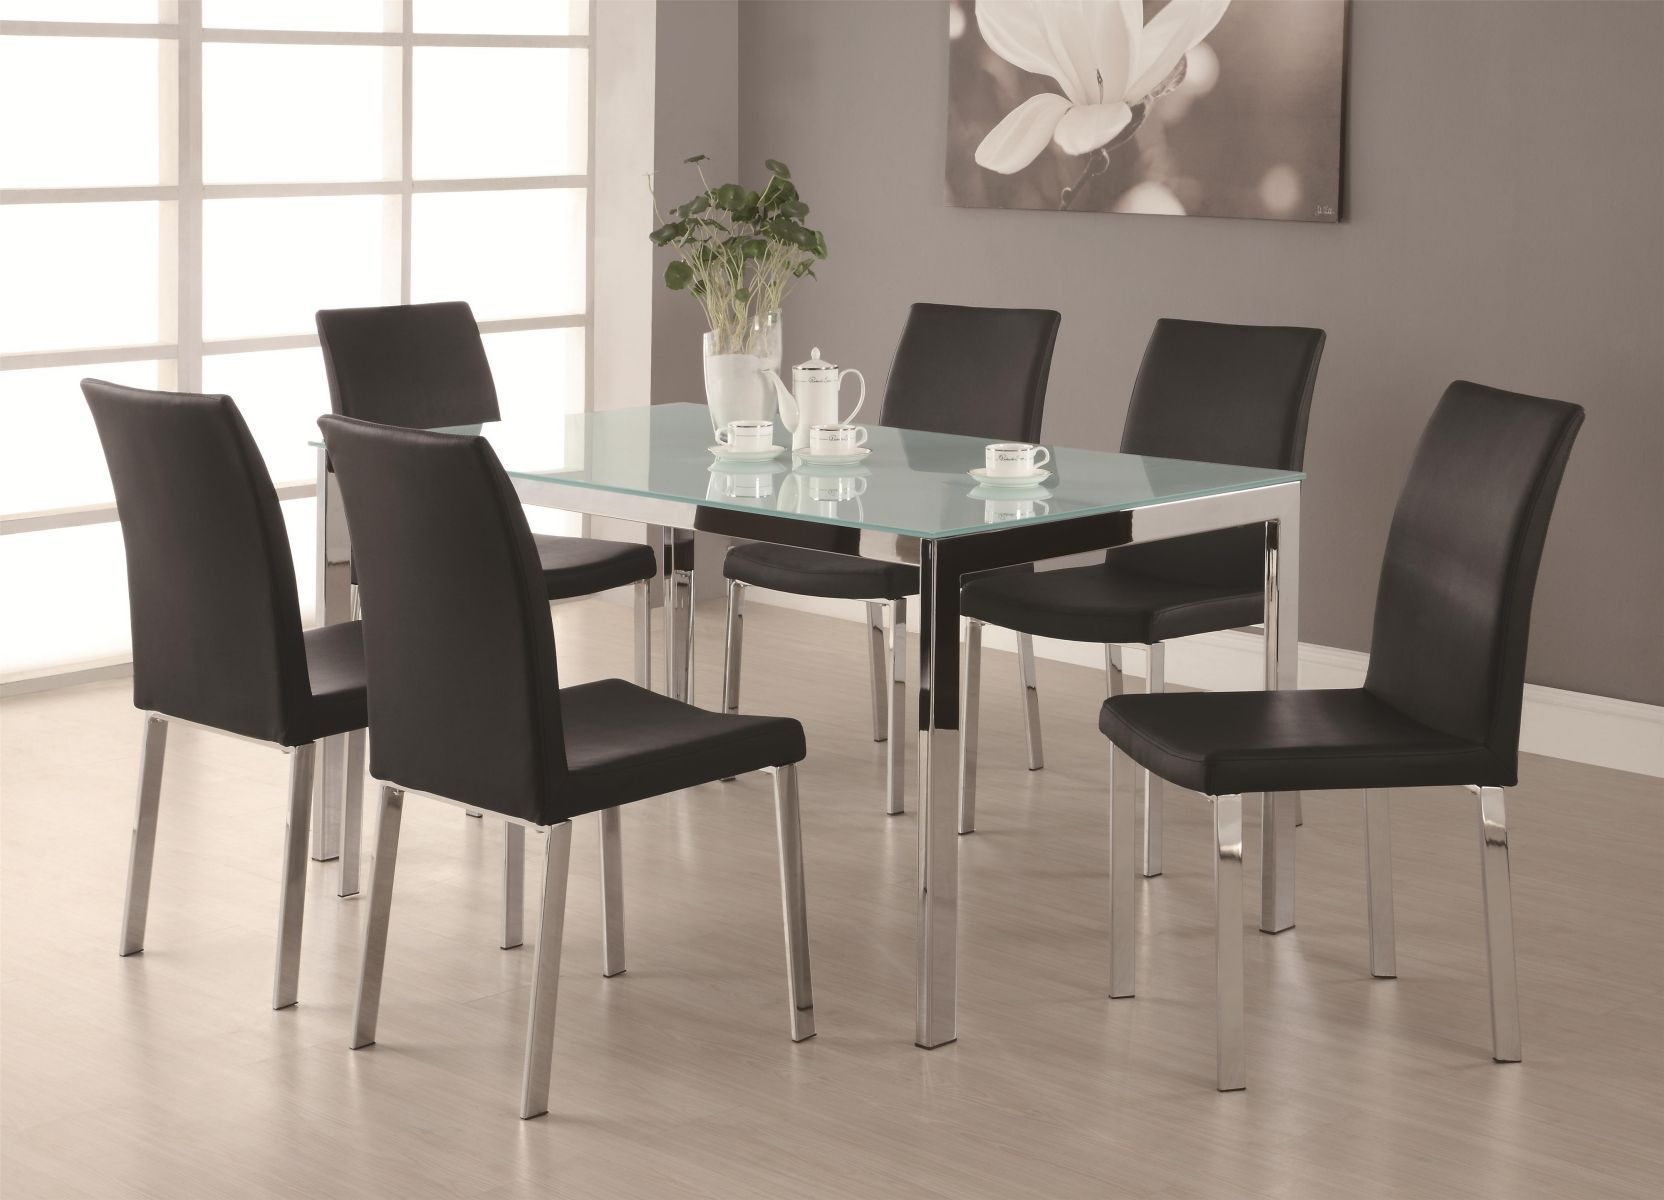 Coaster Dining Room Set  Price Upon Request Call (631) 742-1351 for Best Price Guarantee The Bryn dining room furniture set has a modern sensibility that lets you enjoy your meals in a remarkably sleek space. The lustrous chrome table base comes with a fro